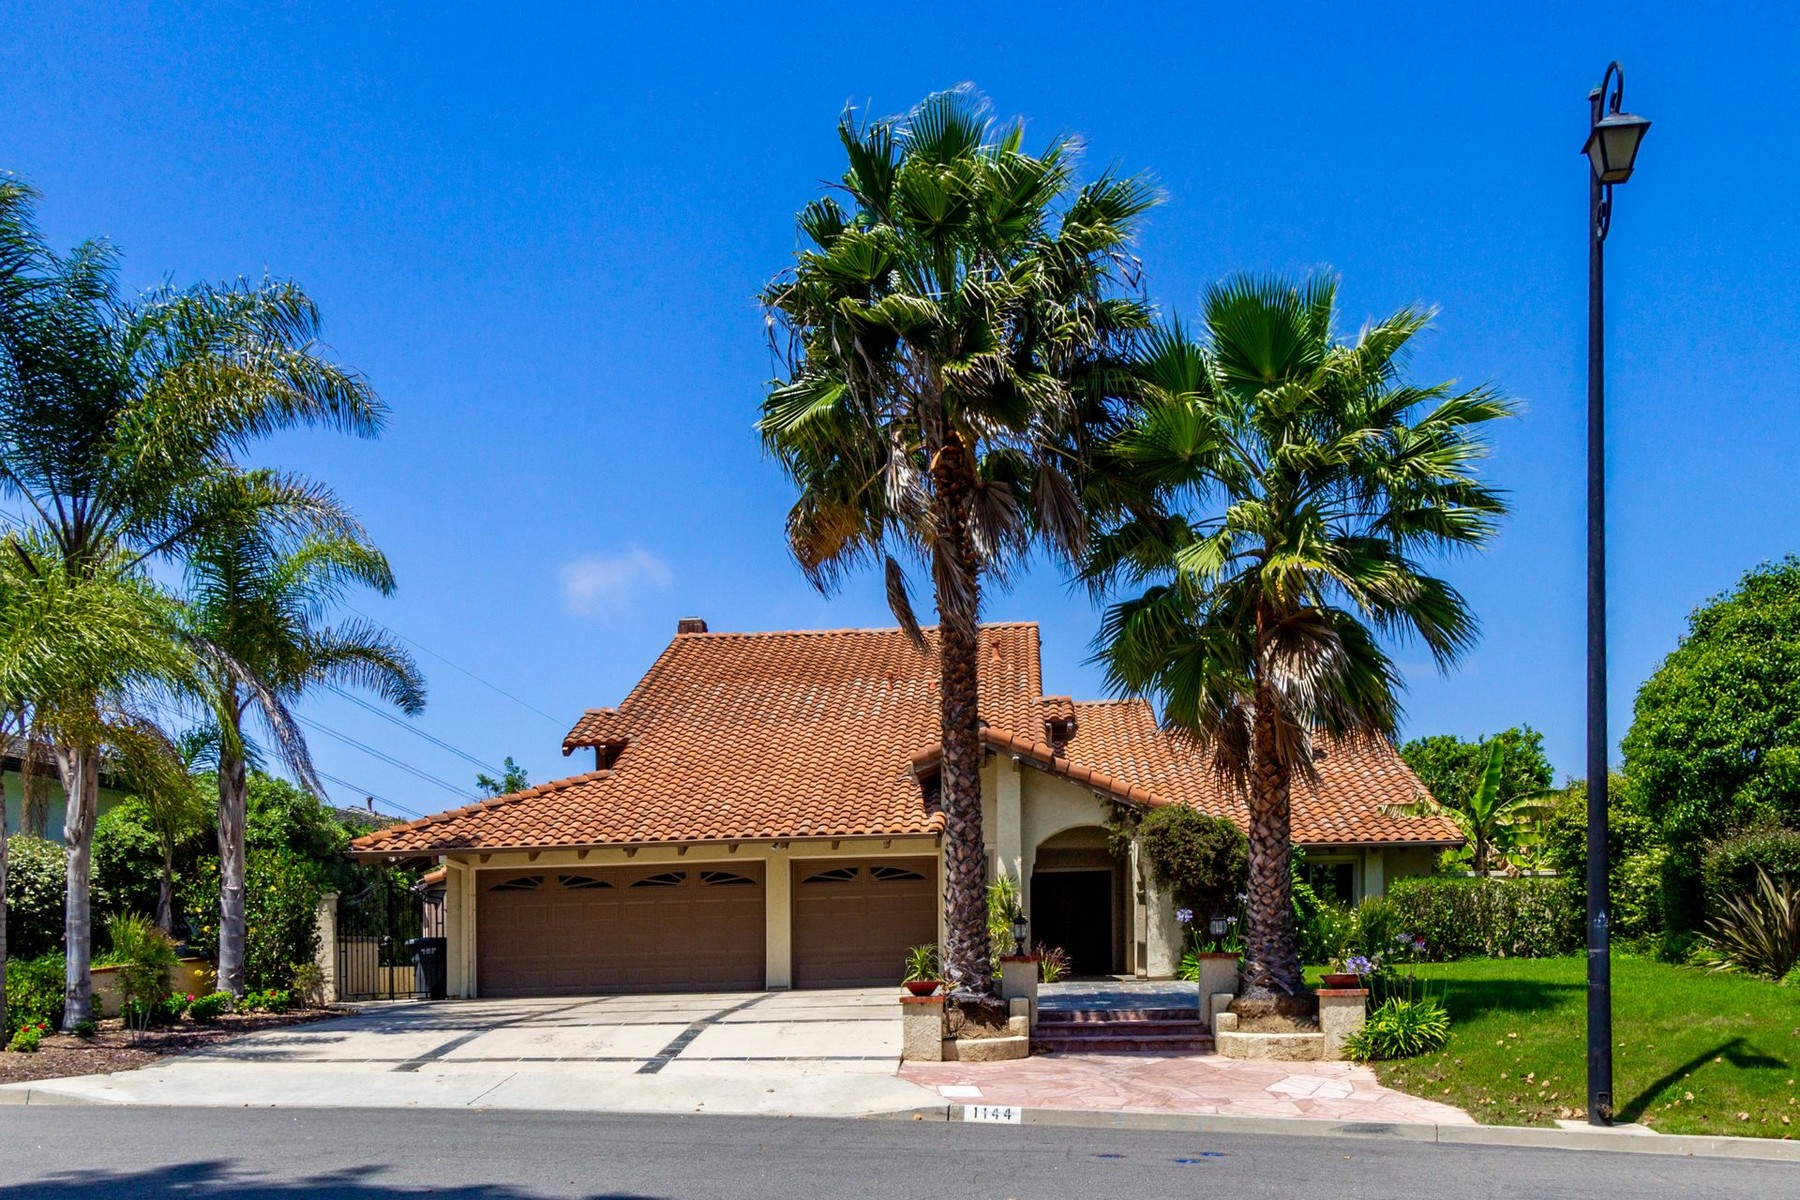 Single Family Homes for Active at 1144 Via Mil Cumbres Solana Beach, California 92075 United States